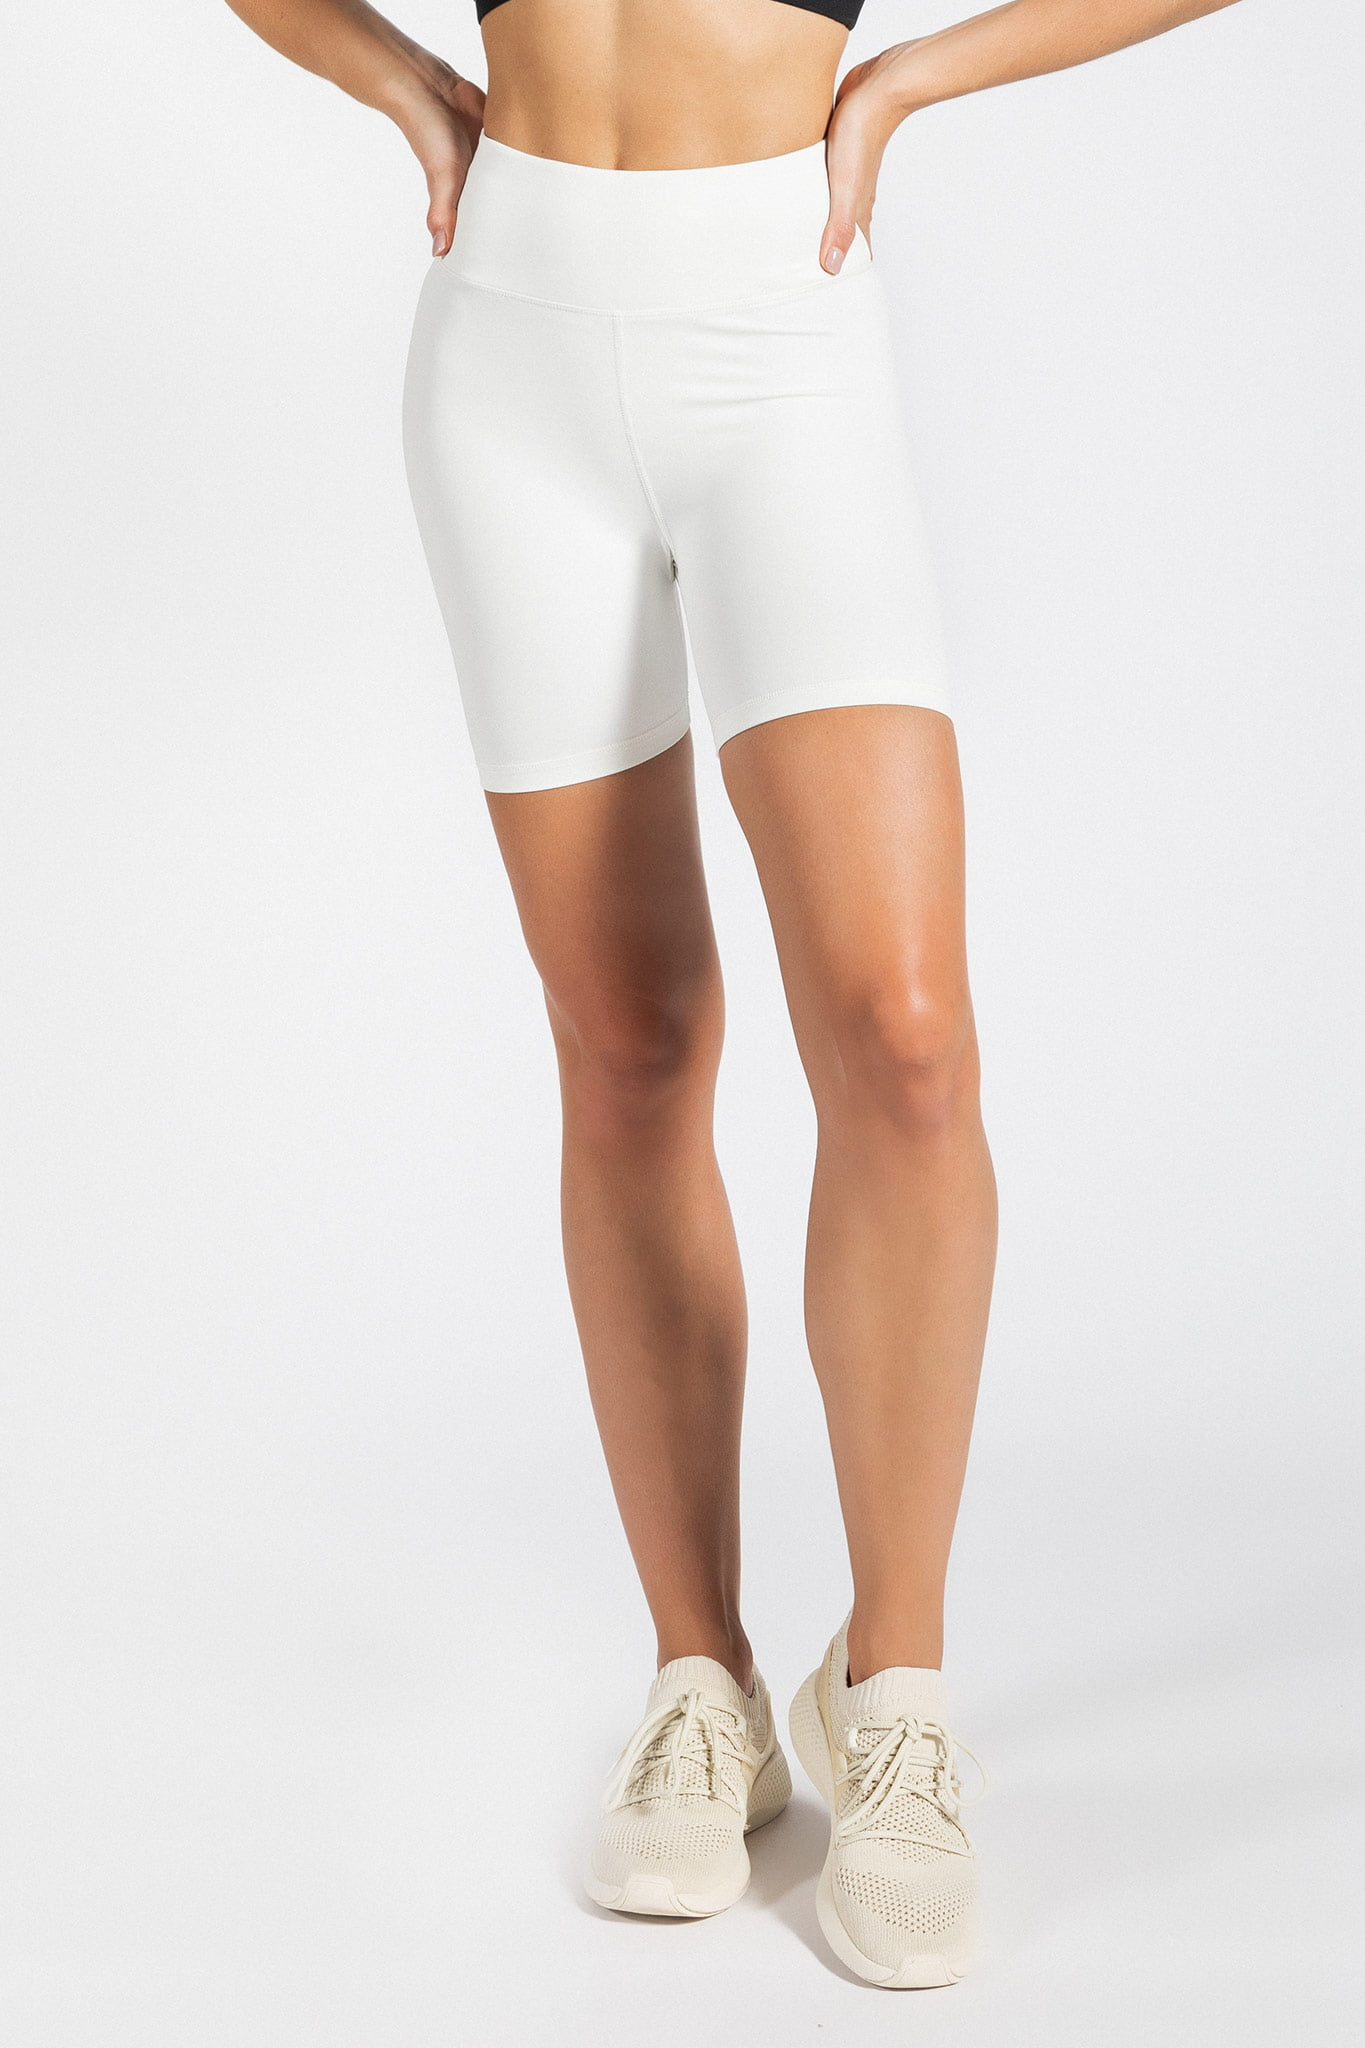 high-waist white biker short